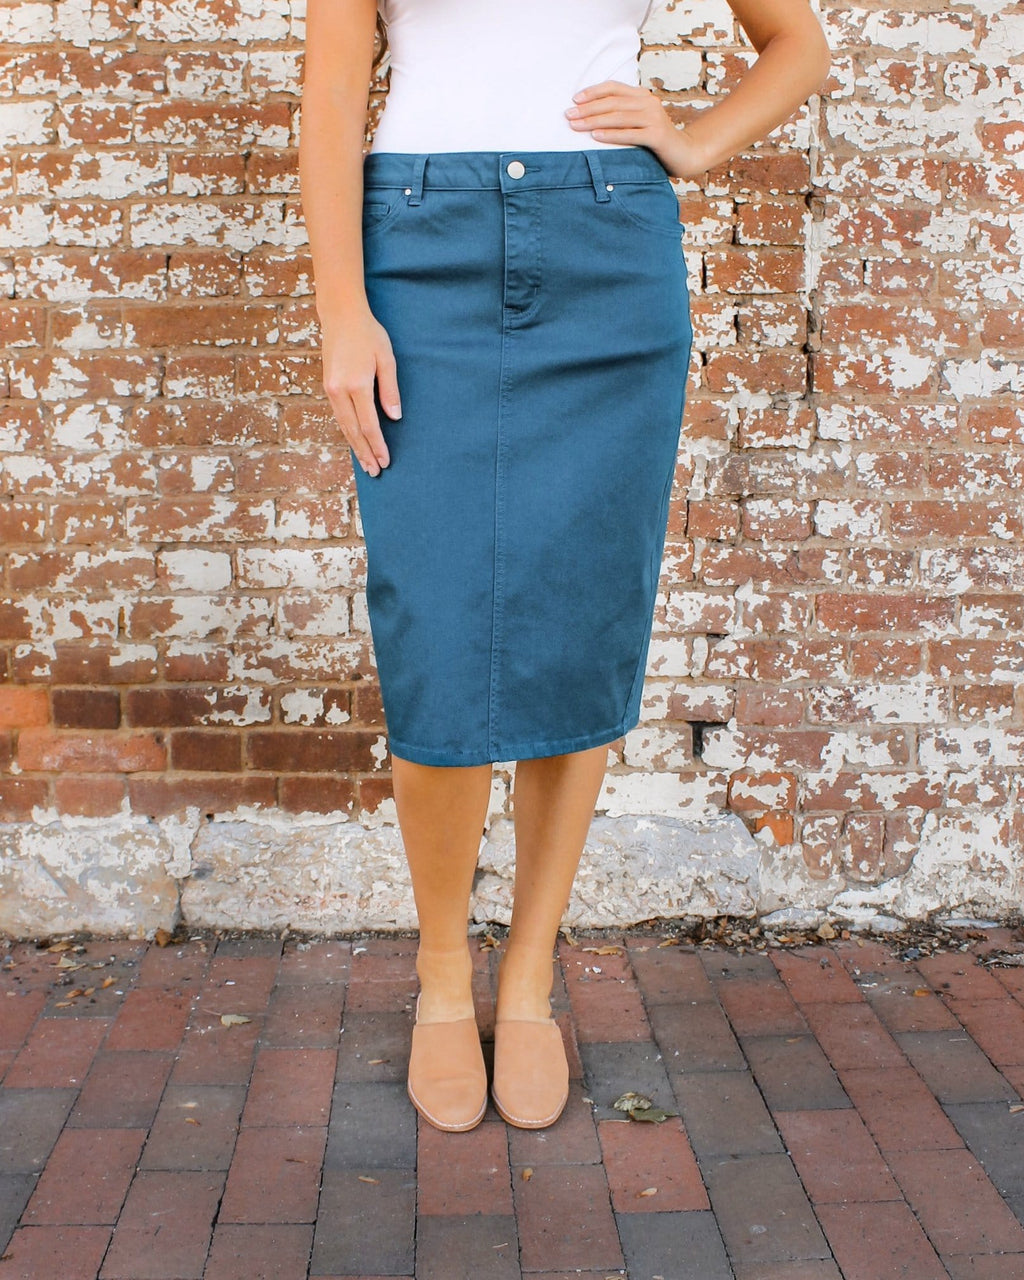 "24"" JDA Emerald Teal Denim Skirt"